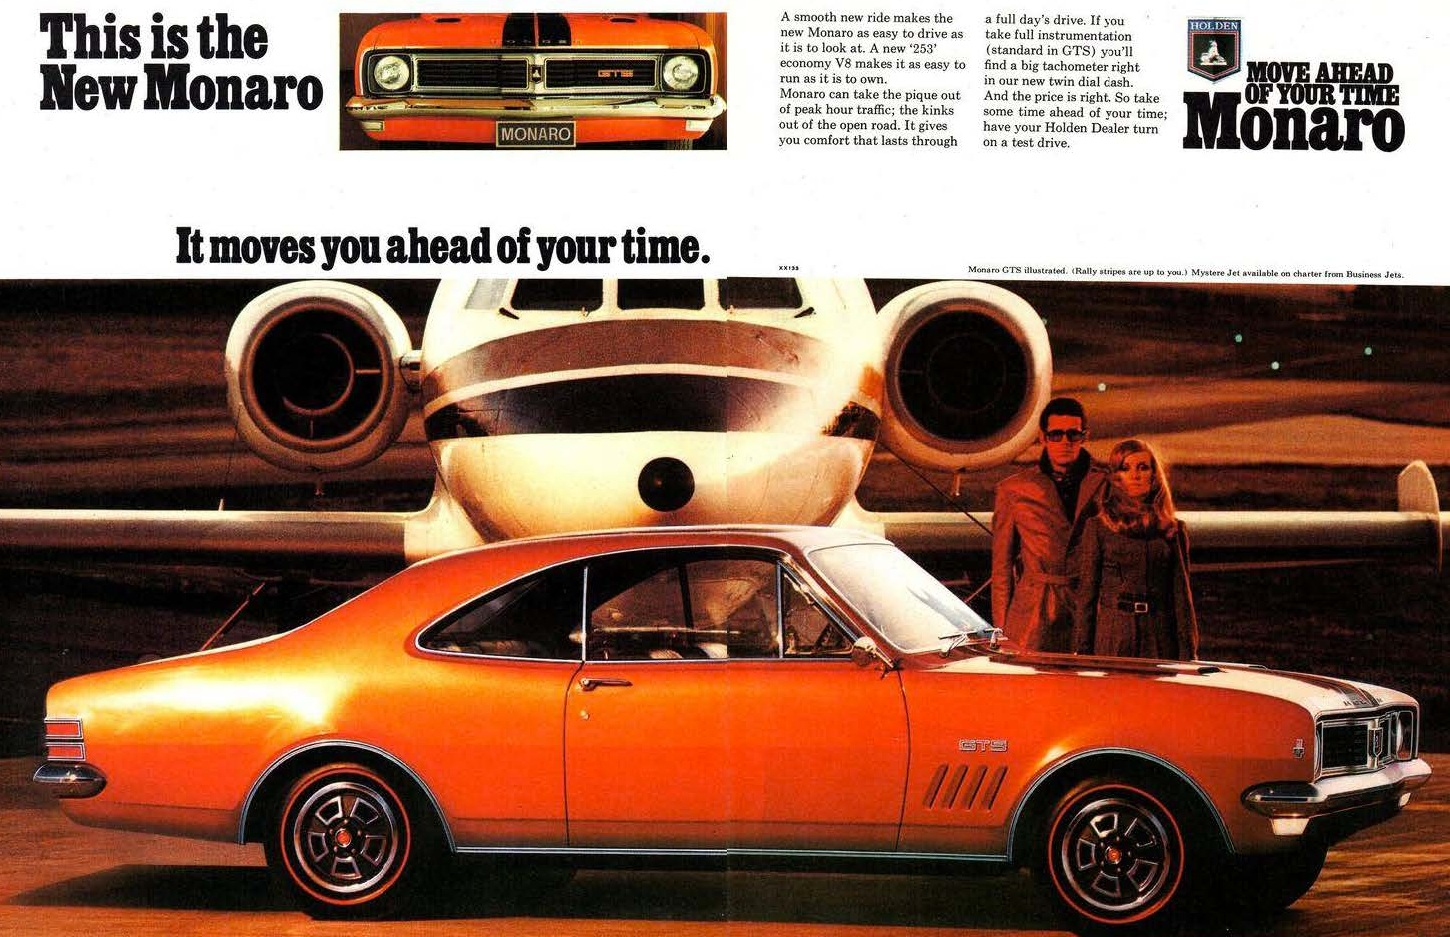 1969 HT GTS Monaro - moves you ahead of your time